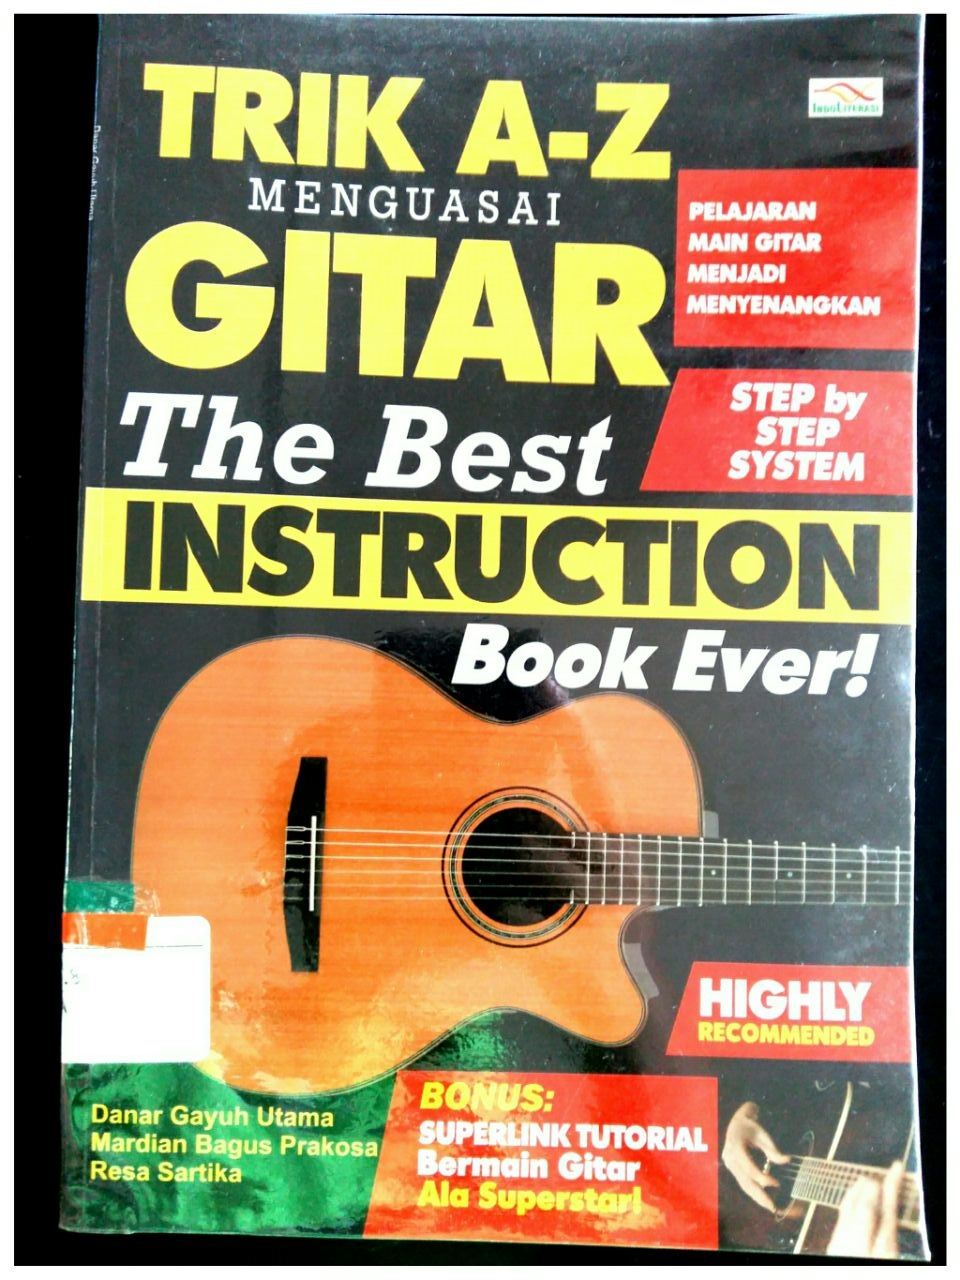 Trik A-Z Menguasai Gitar The Best Instruction Book Ever!